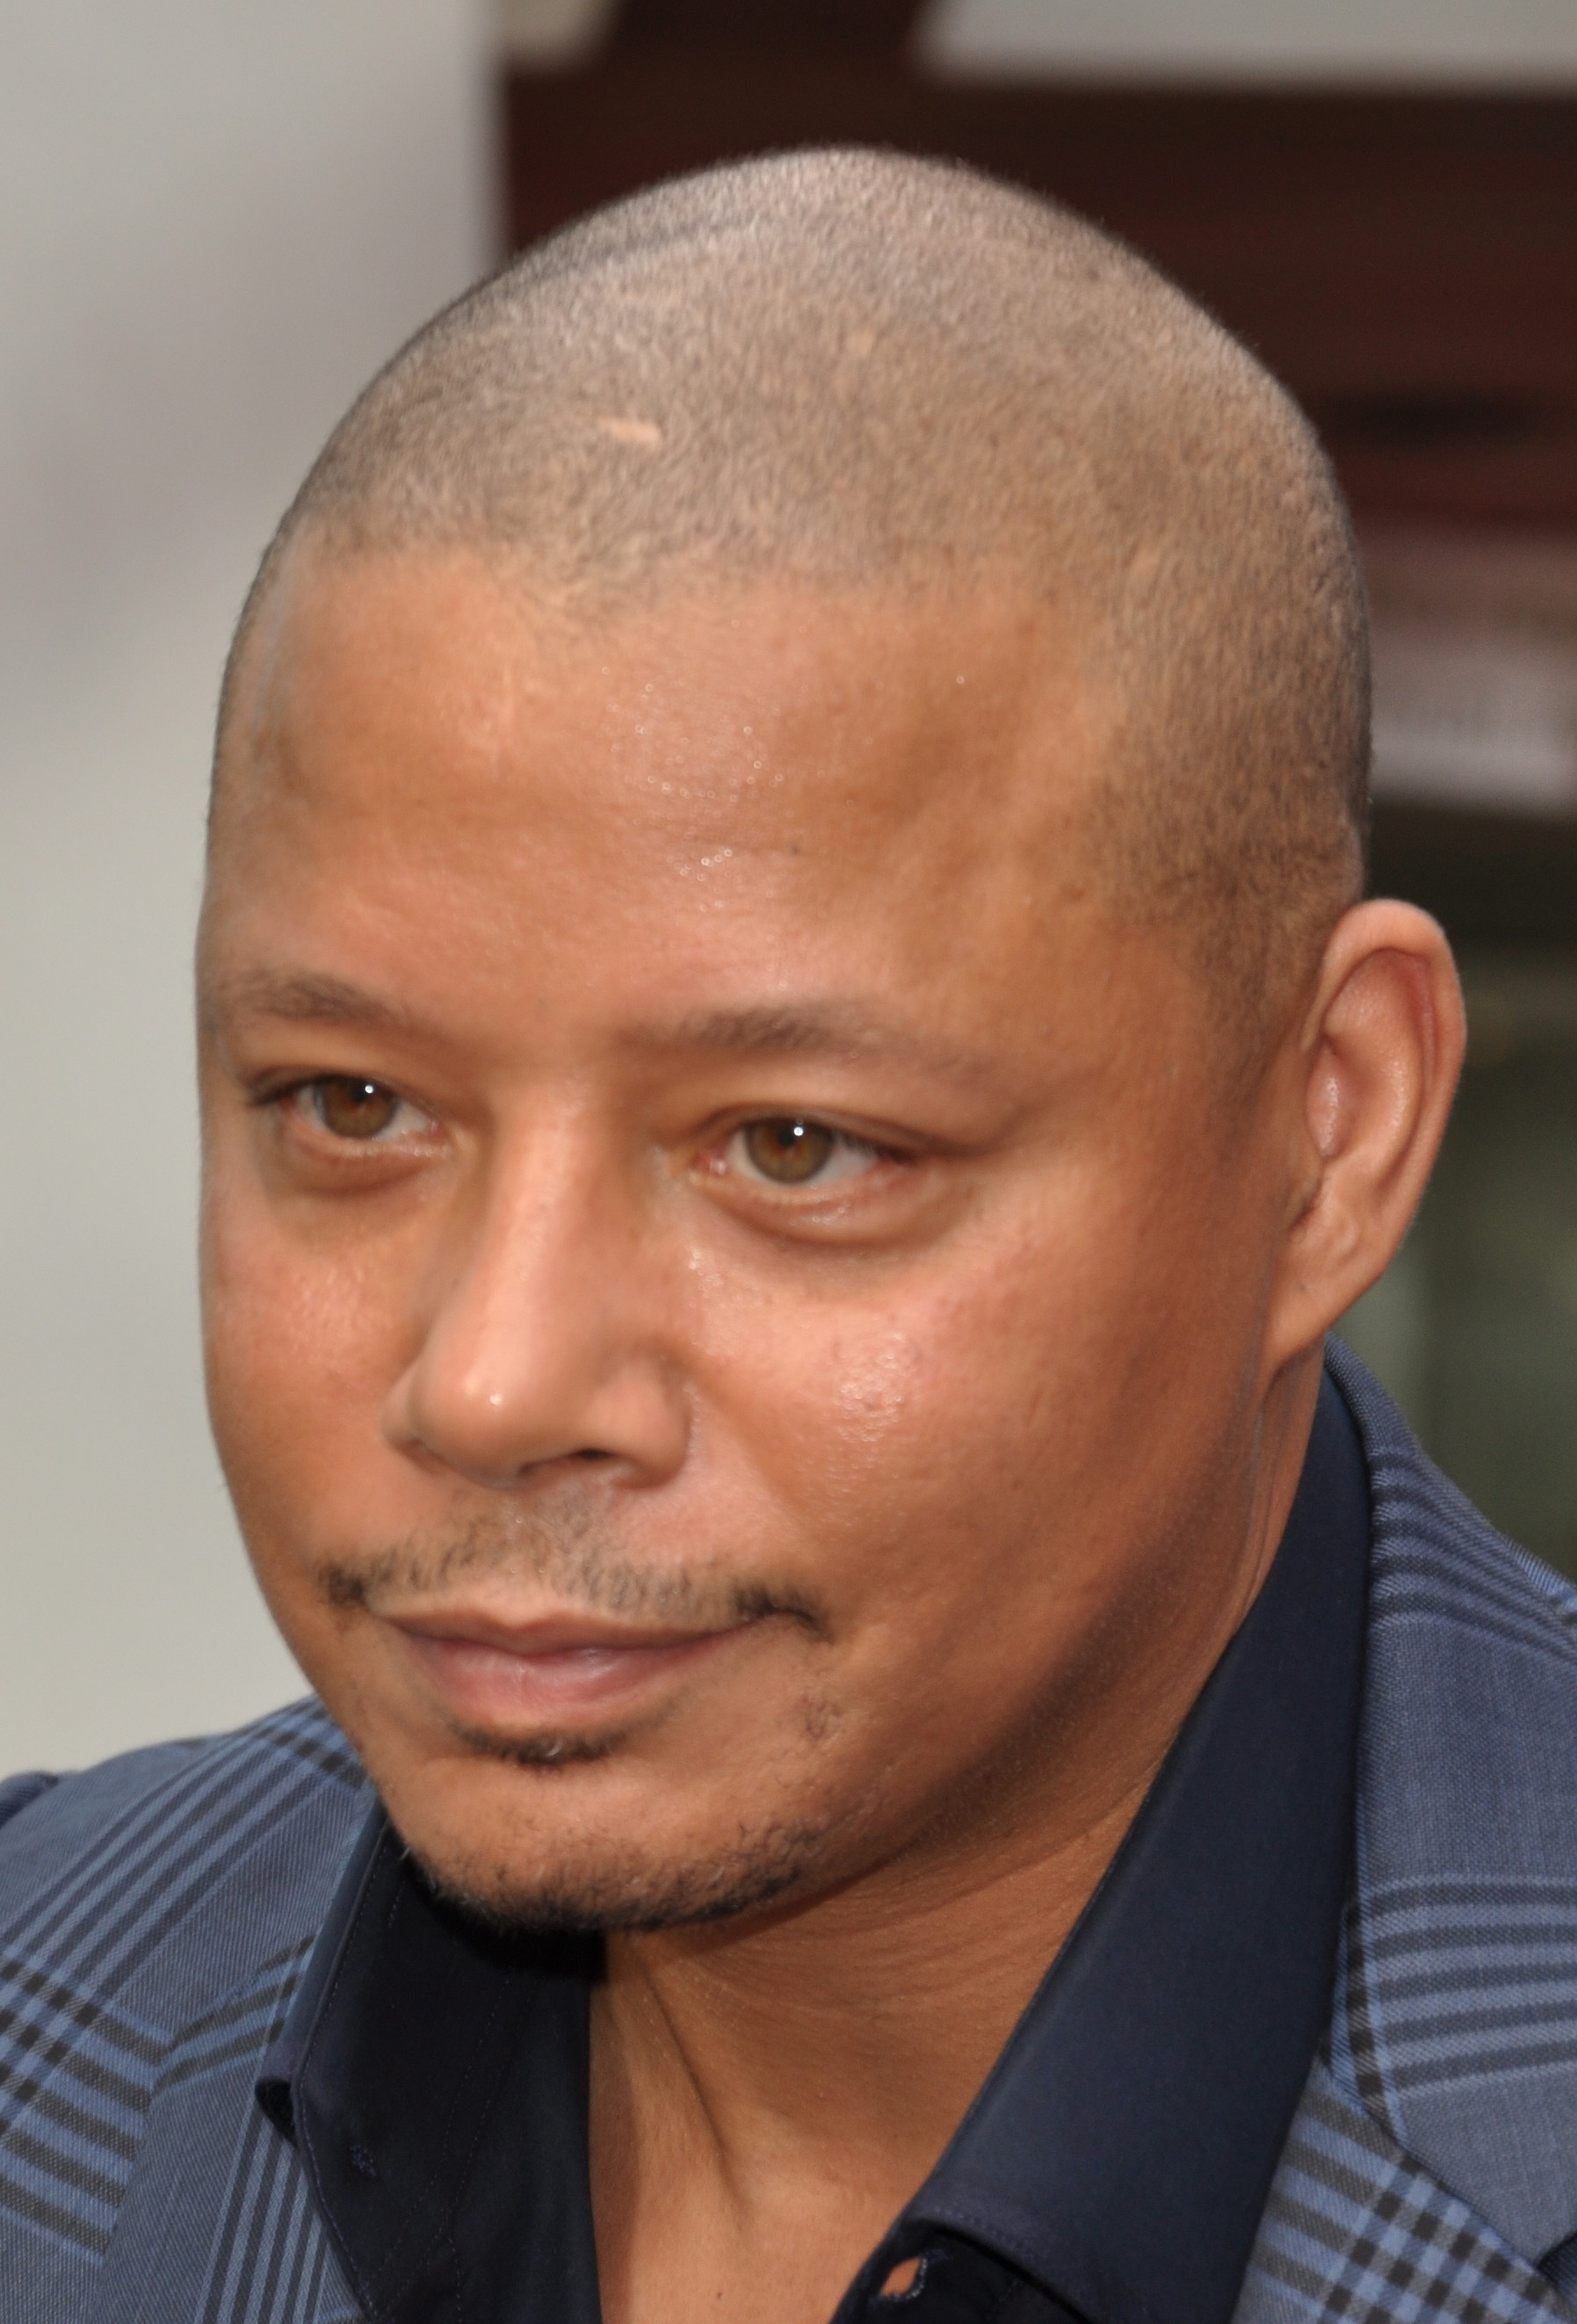 The 49-year old son of father Tyrone Howard and mother Anita Jeanine Williams Terrence Howard in 2018 photo. Terrence Howard earned a  million dollar salary - leaving the net worth at 5 million in 2018